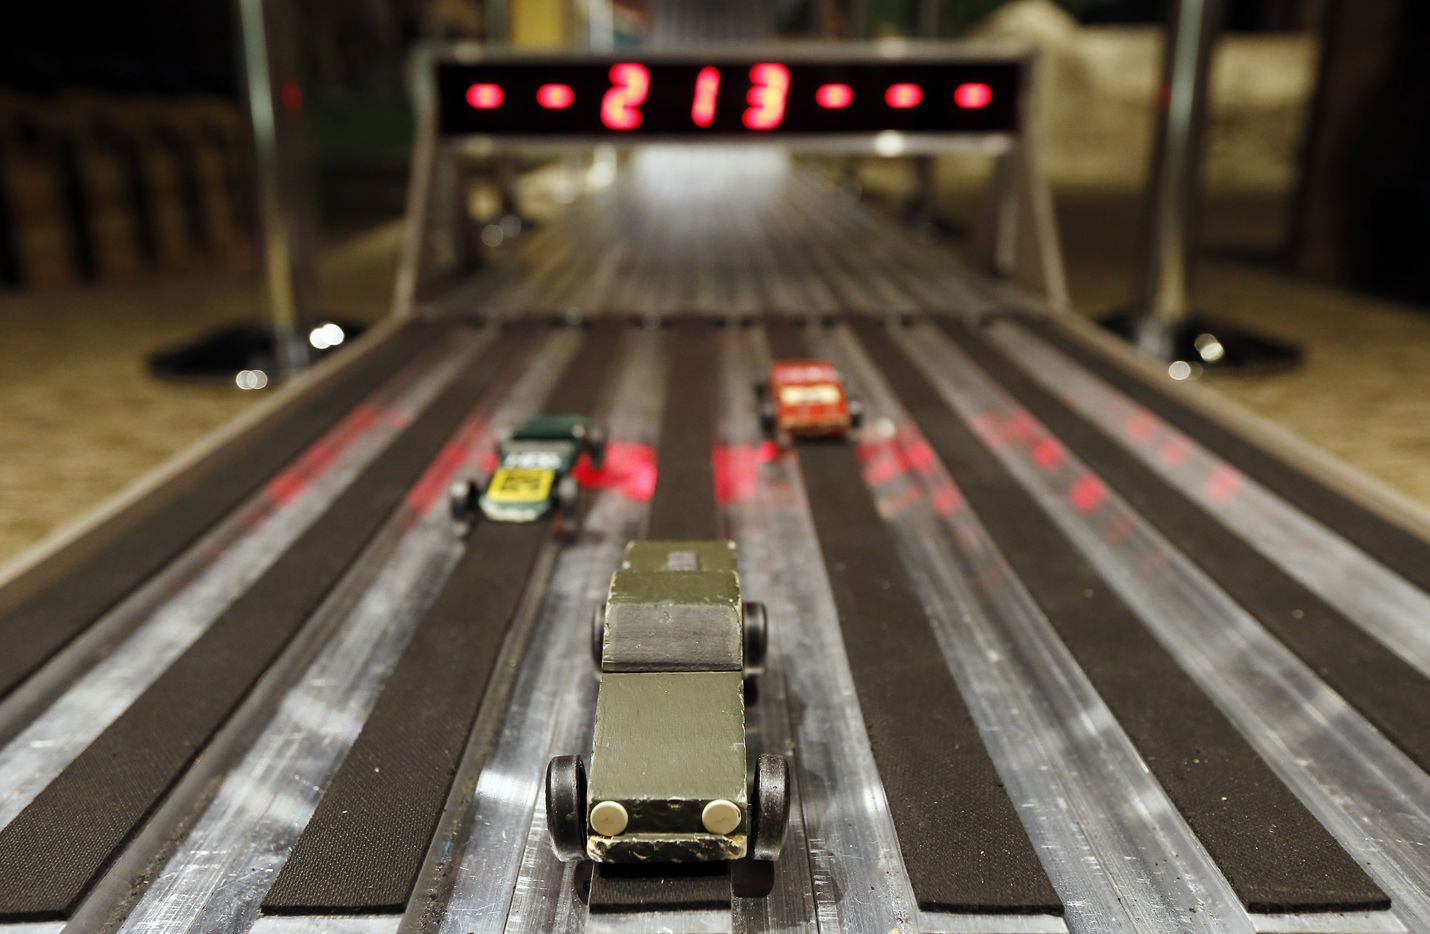 Visitors can race pinewood derby cars on a   six-lane track at the National Scouting Museum. (2015 File Photo/Brandon Wade)